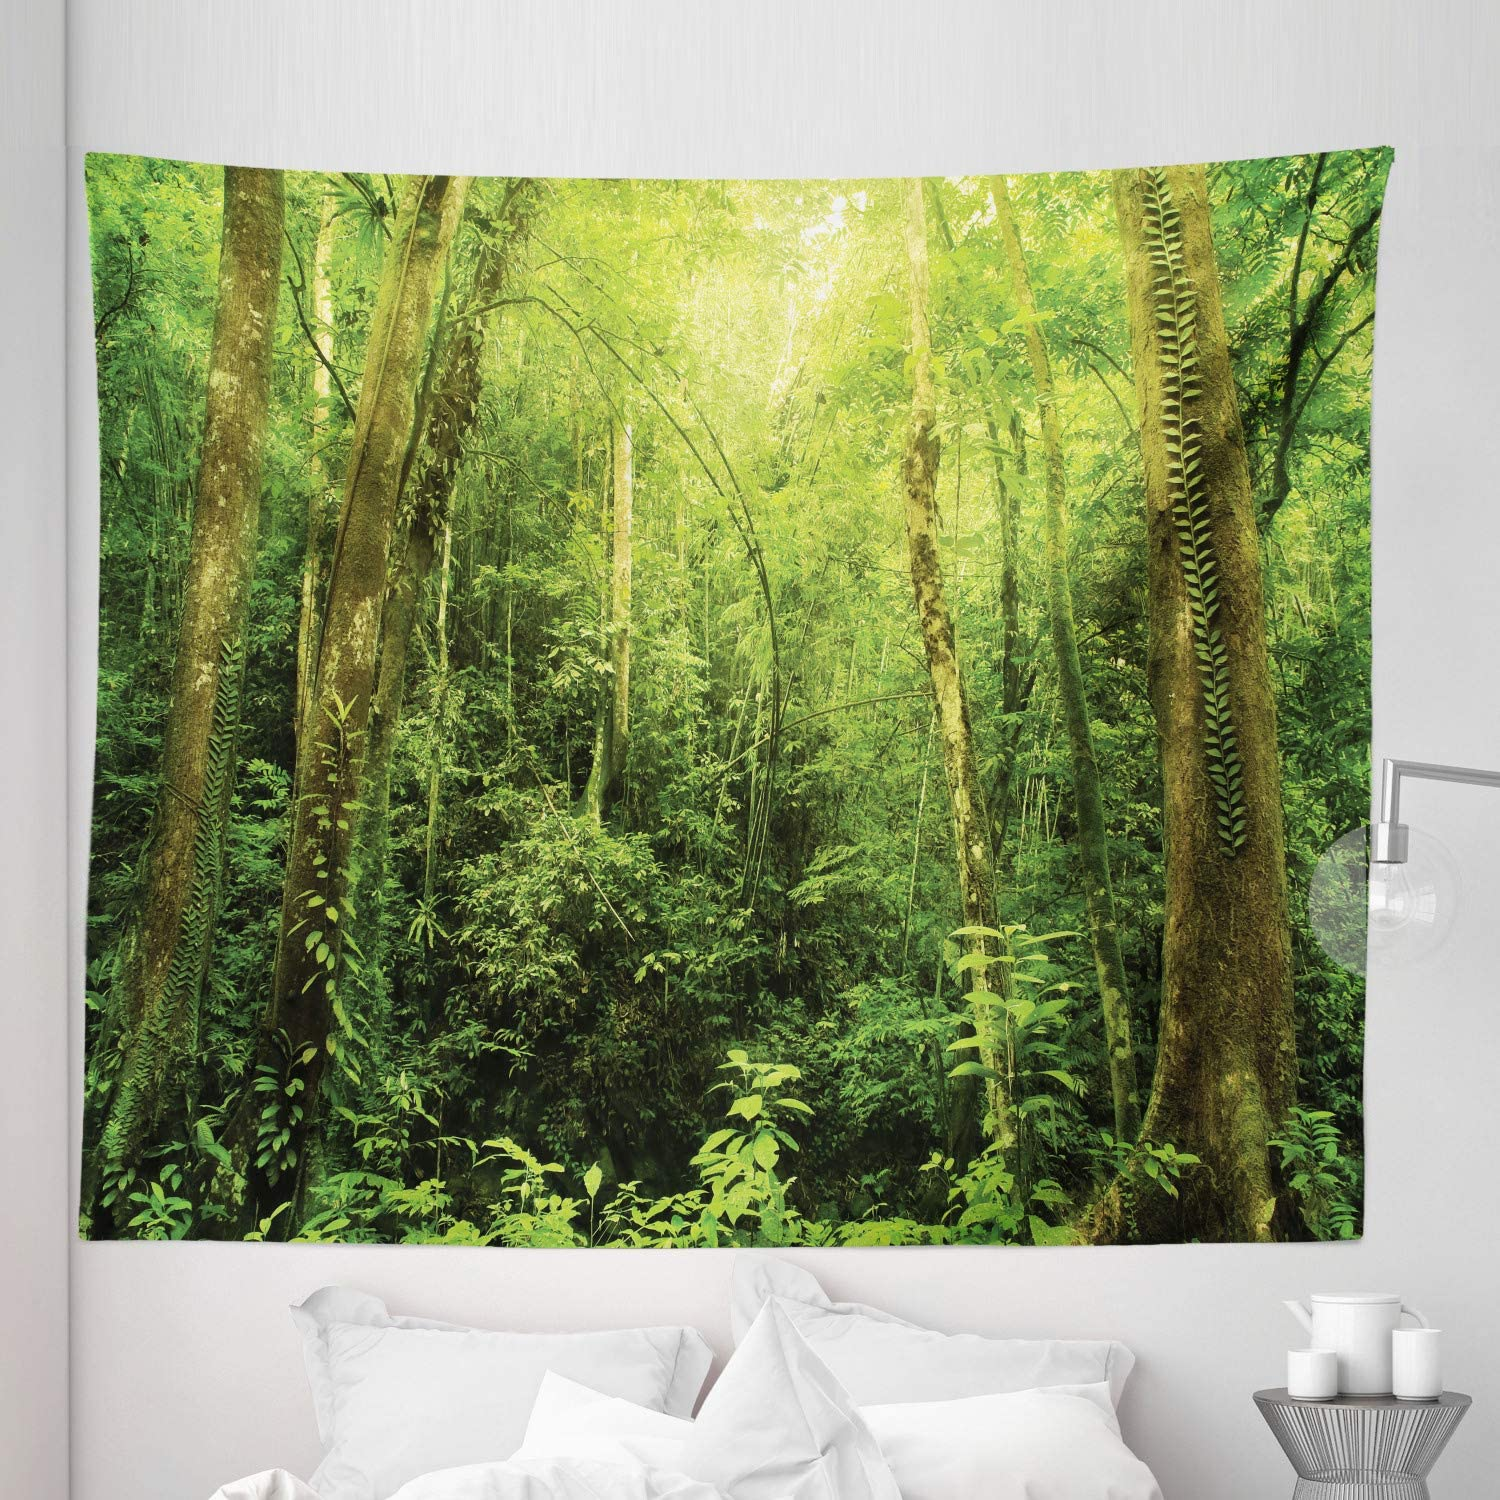 """Ambesonne Rainforest Tapestry King Size, Tropical Rainforest Landscape Malaysia Asia Green Tree Trunks Uncultivated Wood Print, Wall Hanging Bedspread Bed Cover Wall Decor, 104"""" X 88"""", Green"""